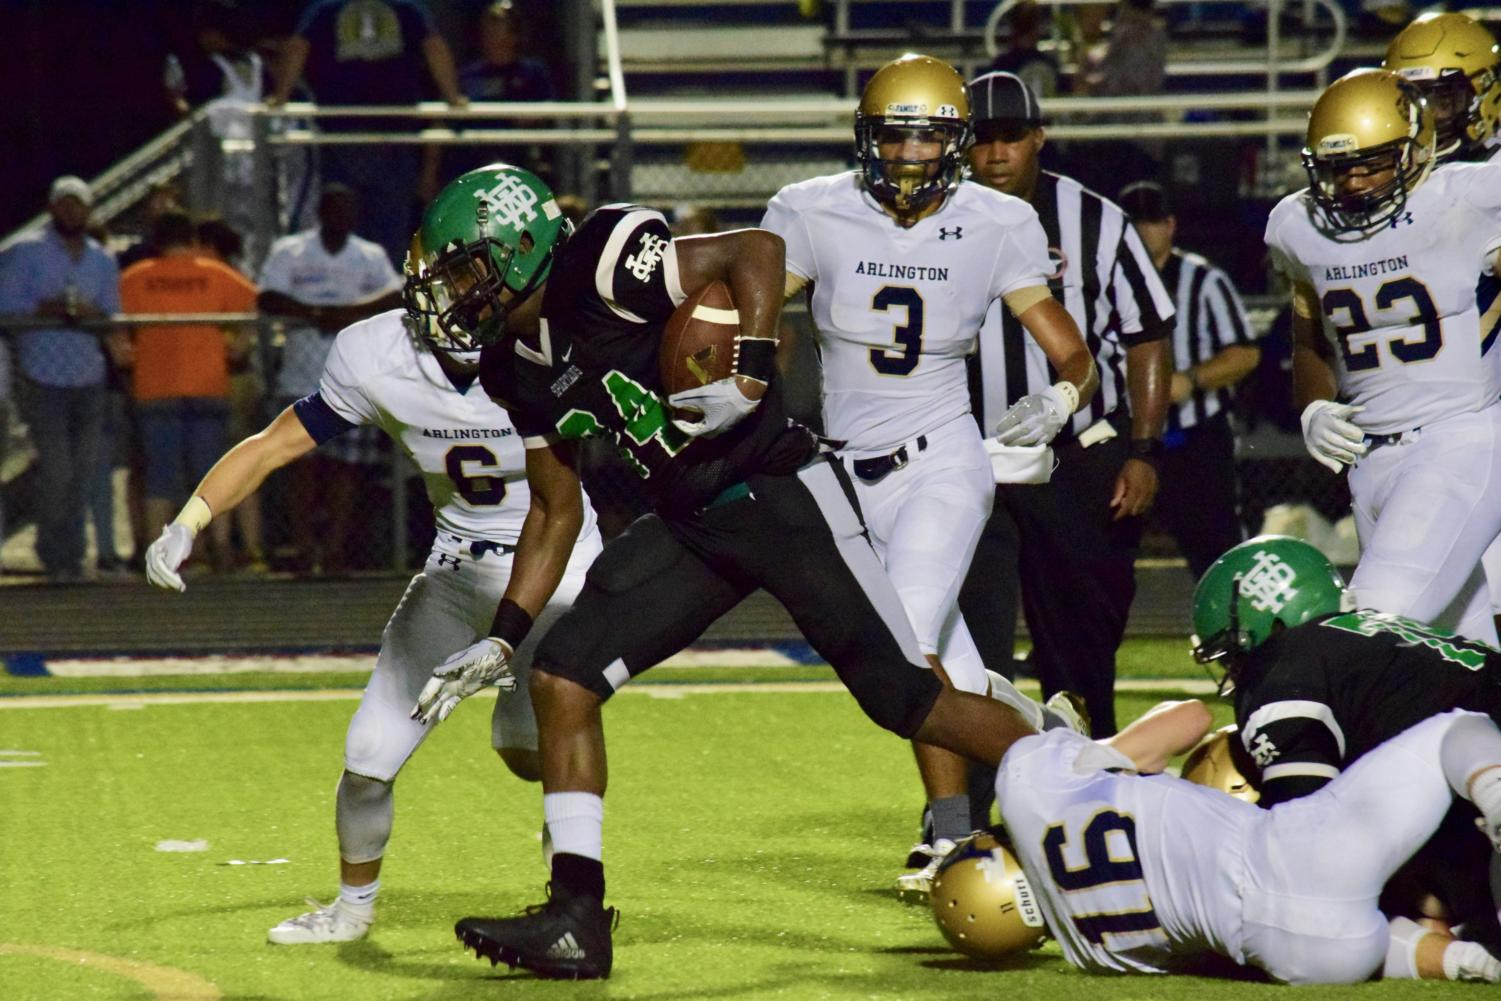 Eli Neal (12) escapes an Arlington defender on his way to the end zone. Neal troubled the Tiger defense all night, ending the game with three touchdowns.